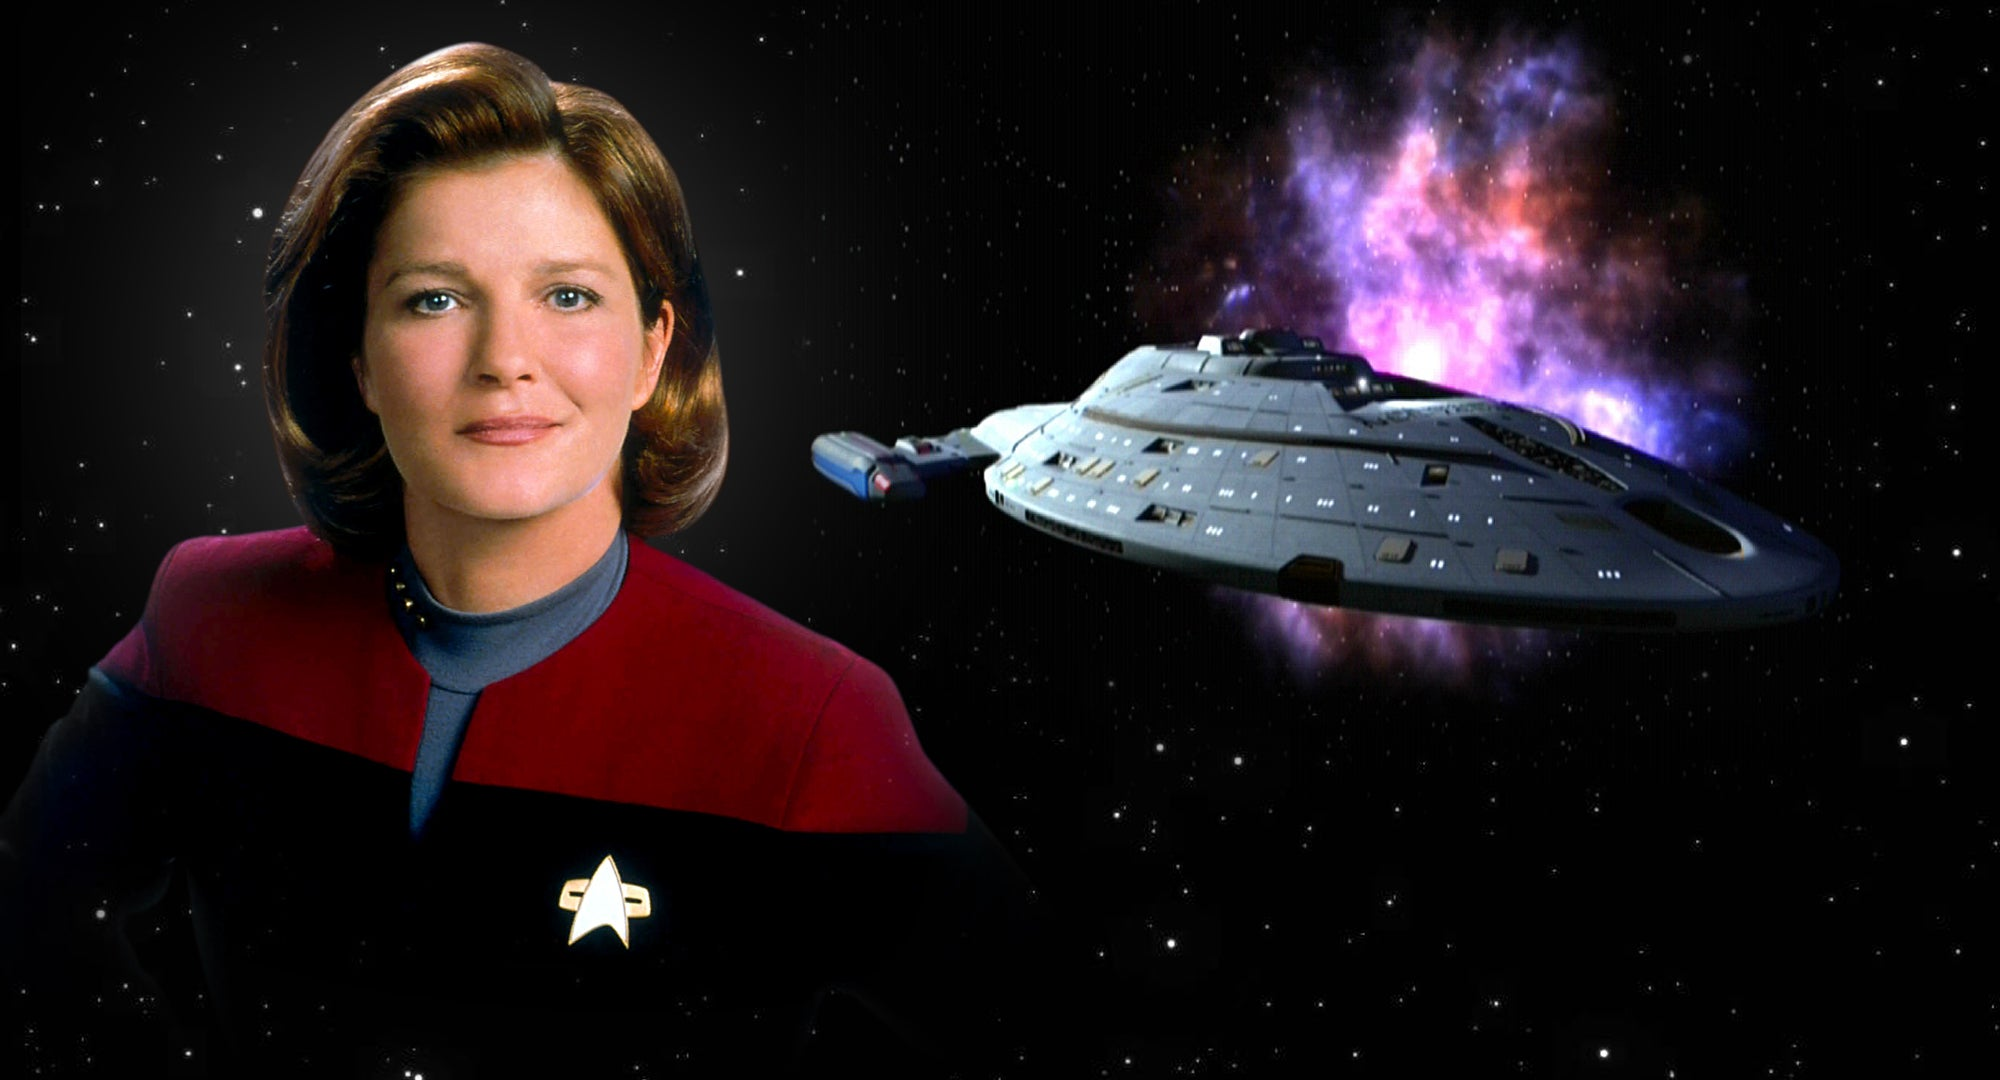 Janeway Cover Image